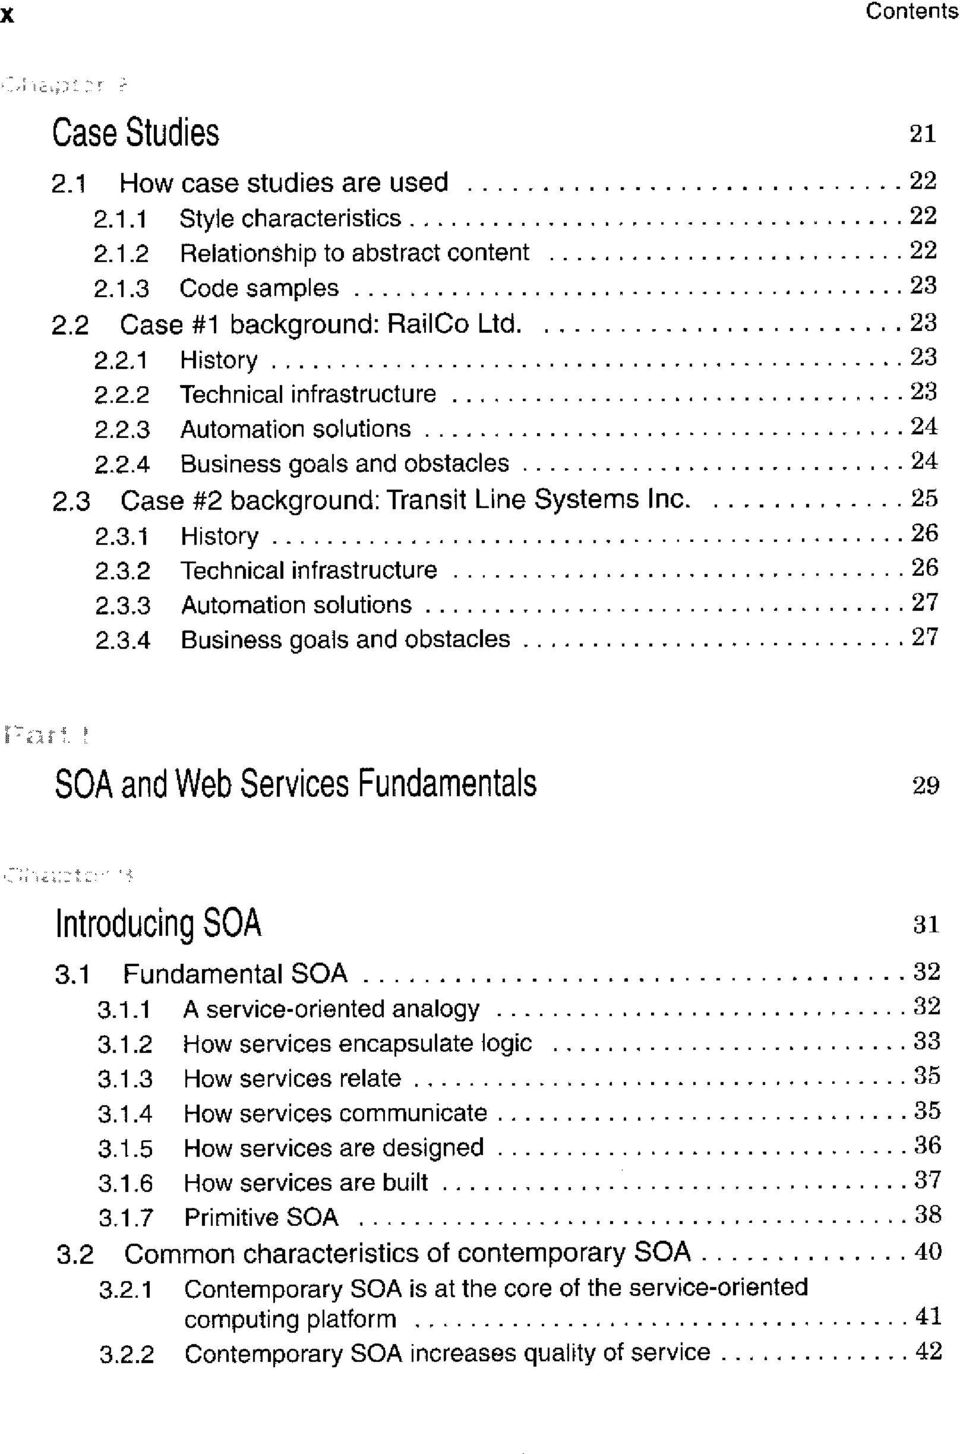 3.3 Automation Solutions 27 2.3.4 Business goals and obstacles 27 Fori! SOA and Web Services Fundamentals 29 Introducing SOA 31 3.1 Fundamental SOA 32 3.1.1 A service-oriented analogy 32 3.1.2 How Services encapsulate logic 33 3.